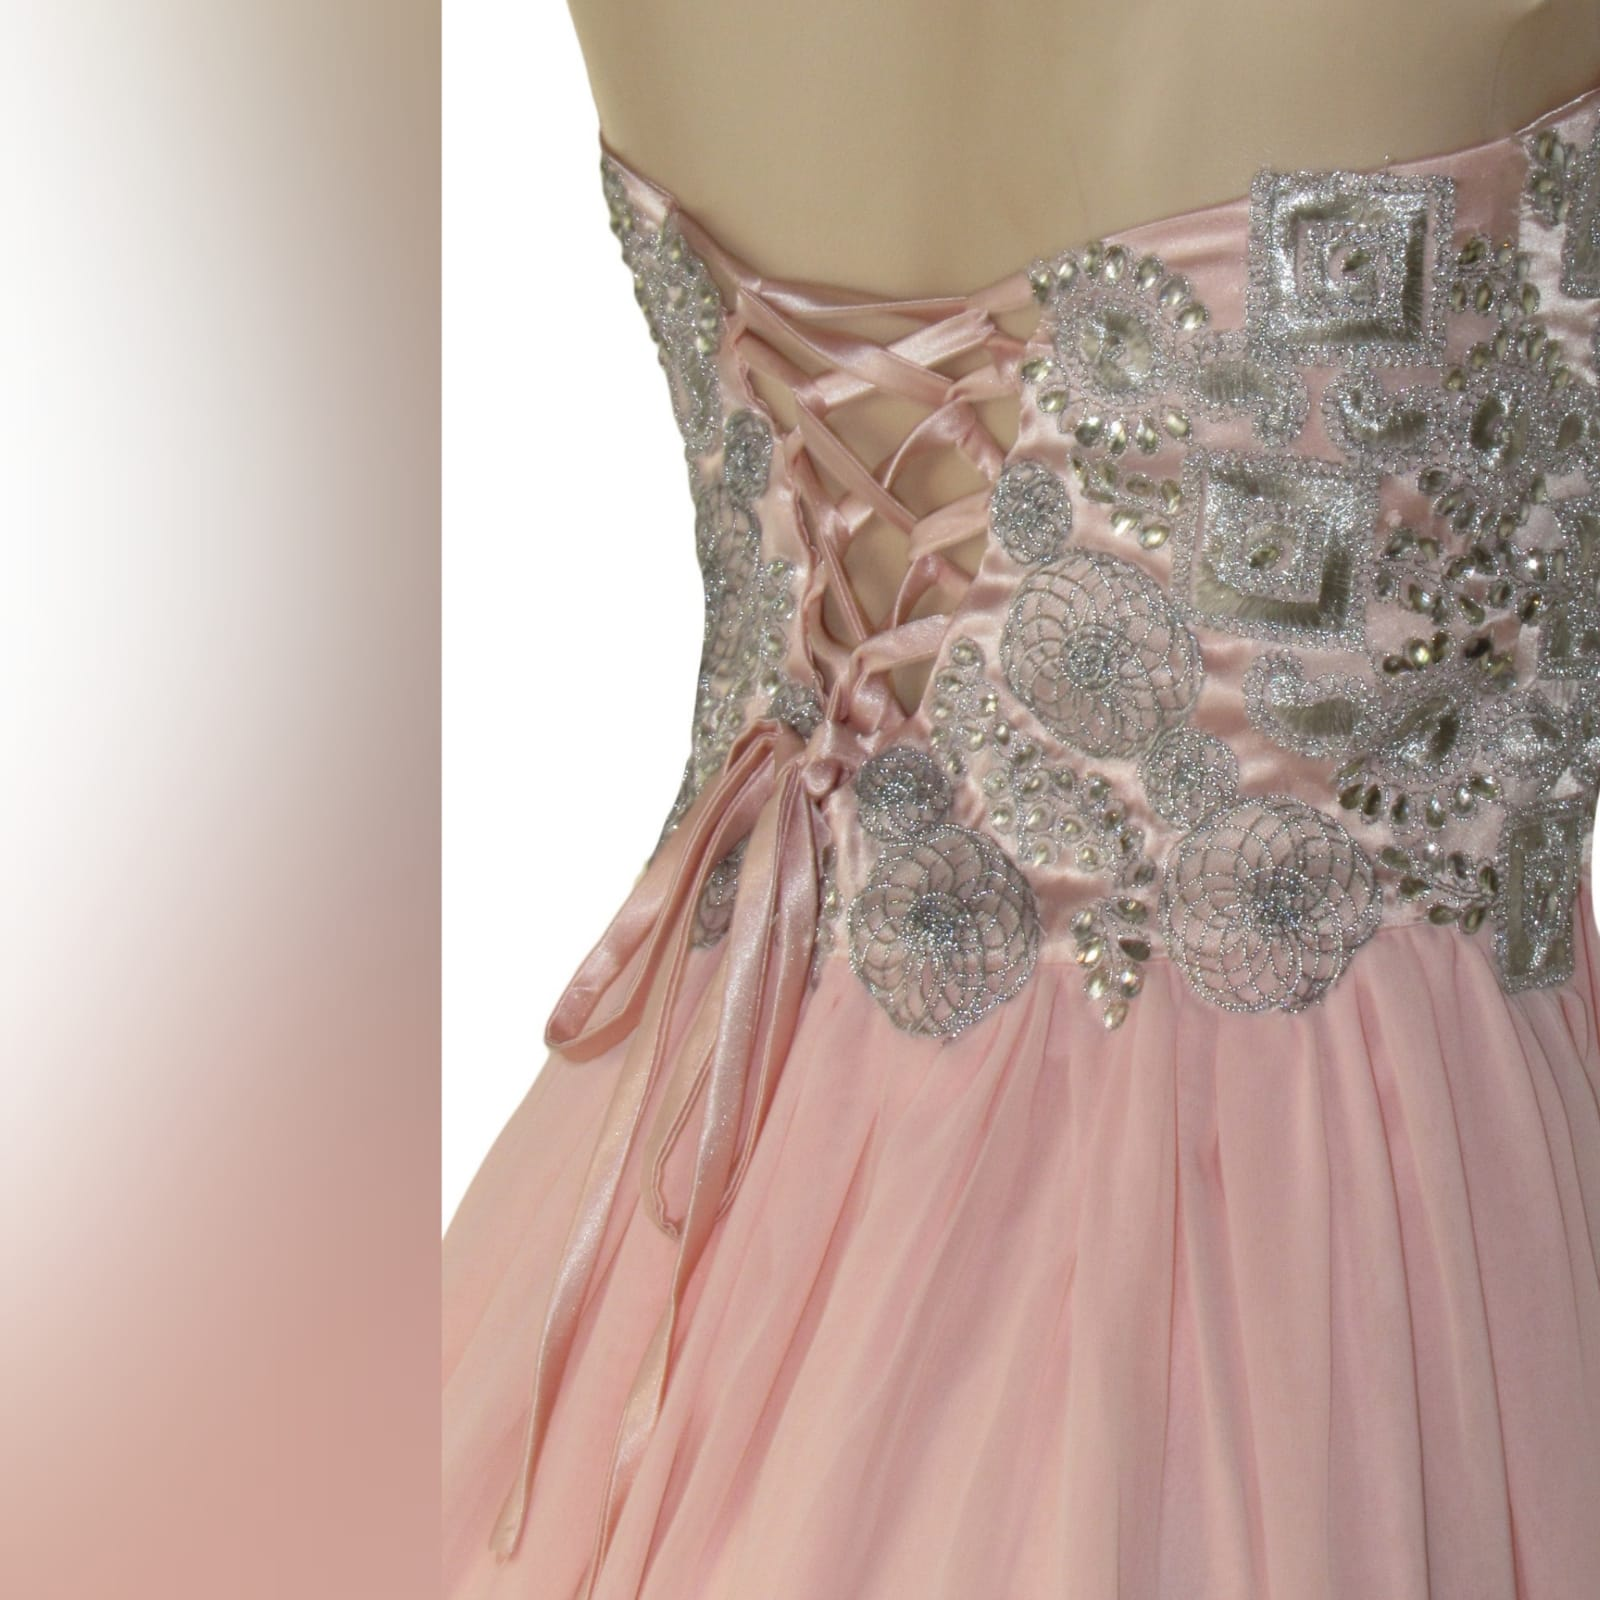 Peach and silver fun prom dress 5 peach and silver fun prom dress. Bodice detailed with appliques and beads, with a lace-up back. Bottom with gathered chiffon and an overlayer opened in front.